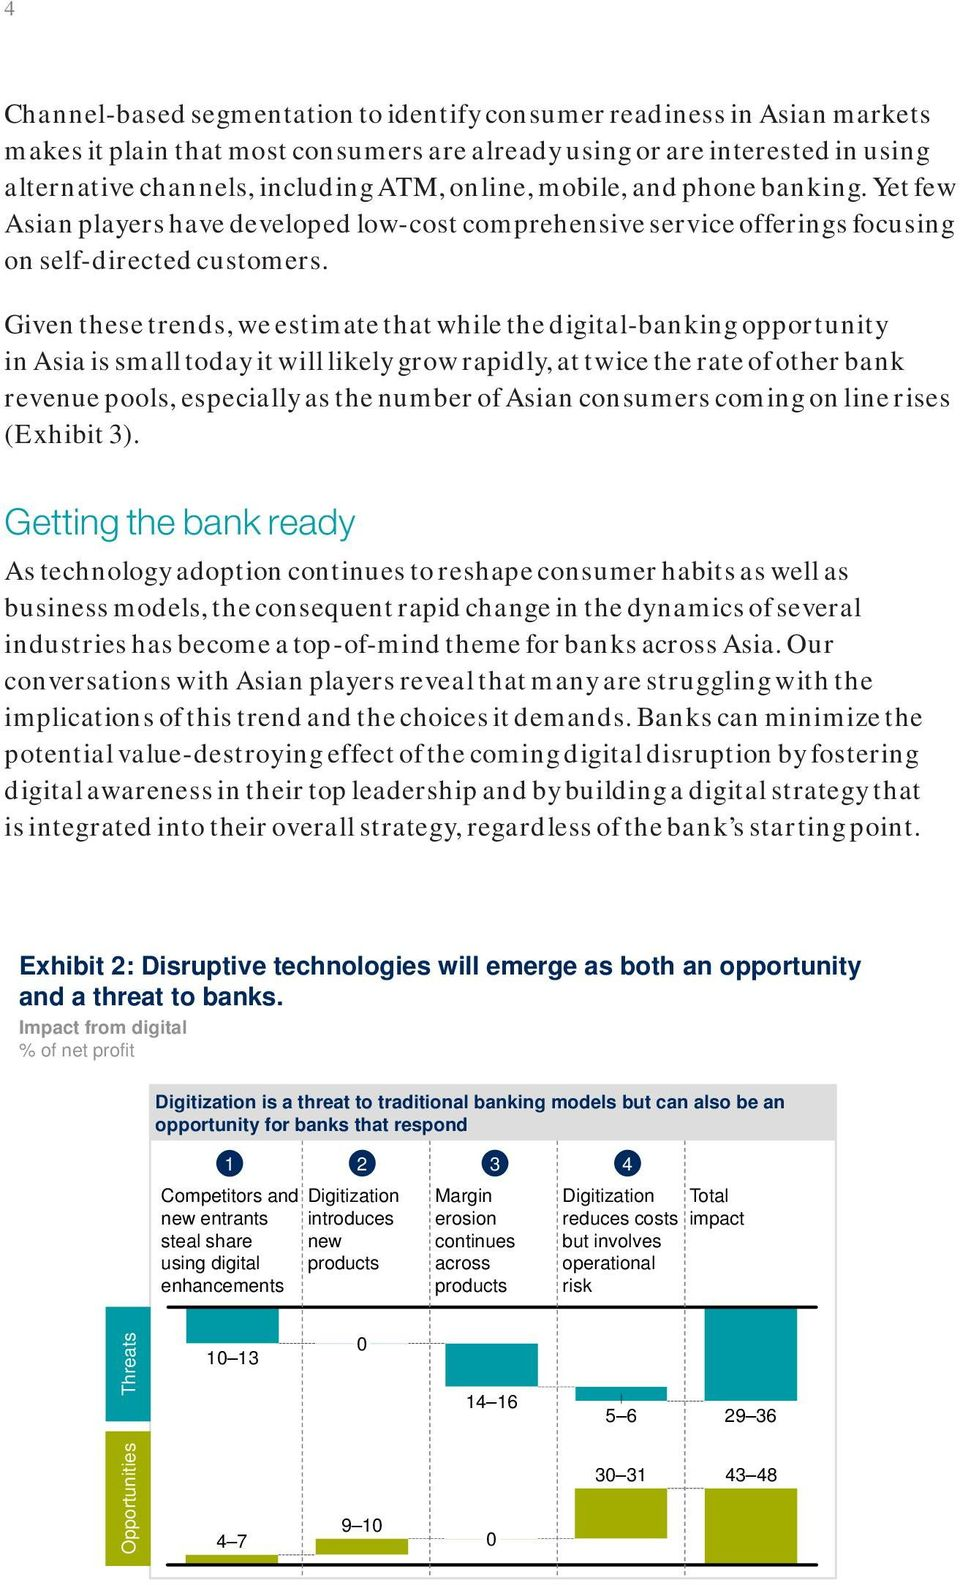 Given these trends, we estimate that while the digital-banking opportunity in Asia is small today it will likely grow rapidly, at twice the rate of other bank revenue pools, especially as the number